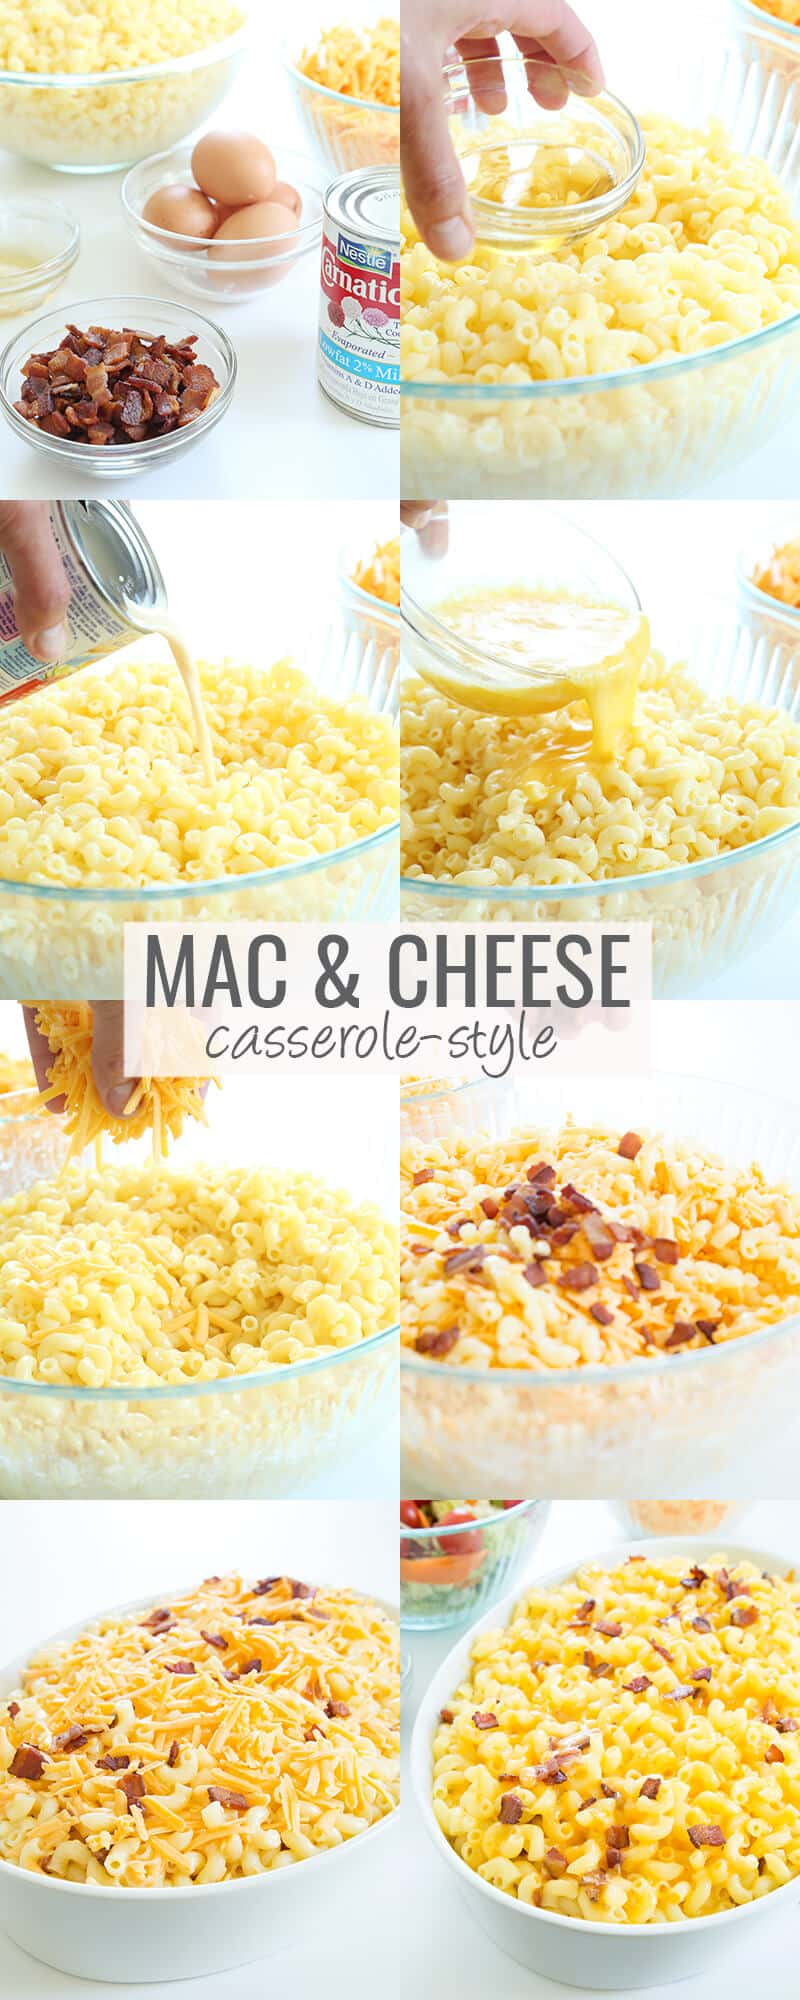 Pasta in a bowl with evaporated milk being poured in, pasta in a bowl with egg mixture being poured in, pasta in bowl with cheese, pasta in bowl with cheese and bacon bits